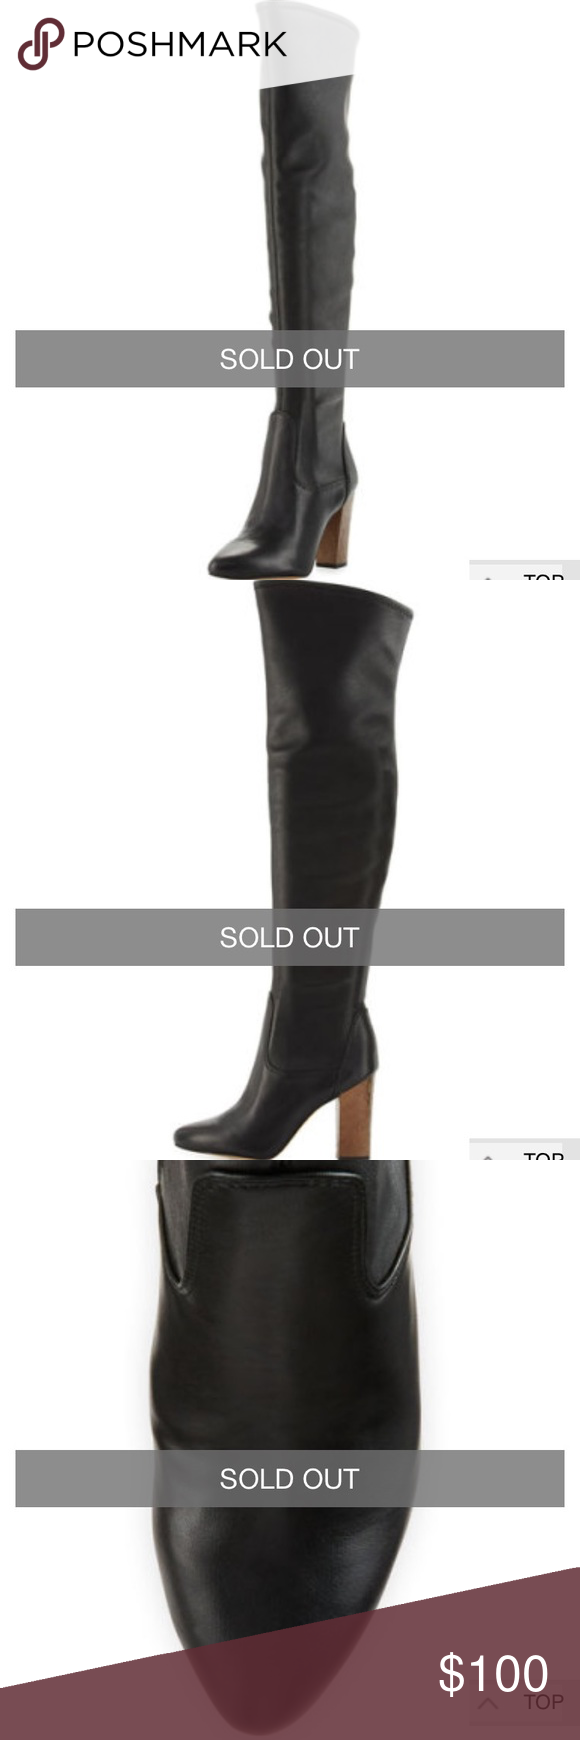 Brooklyn Over the Knee Boot Purchased from Neiman Marcus. Only worn a few times, excellent condition. Faux leather. Very comfortable! Sold out in stores. Circus by Sam Edelman Shoes Over the Knee Boots